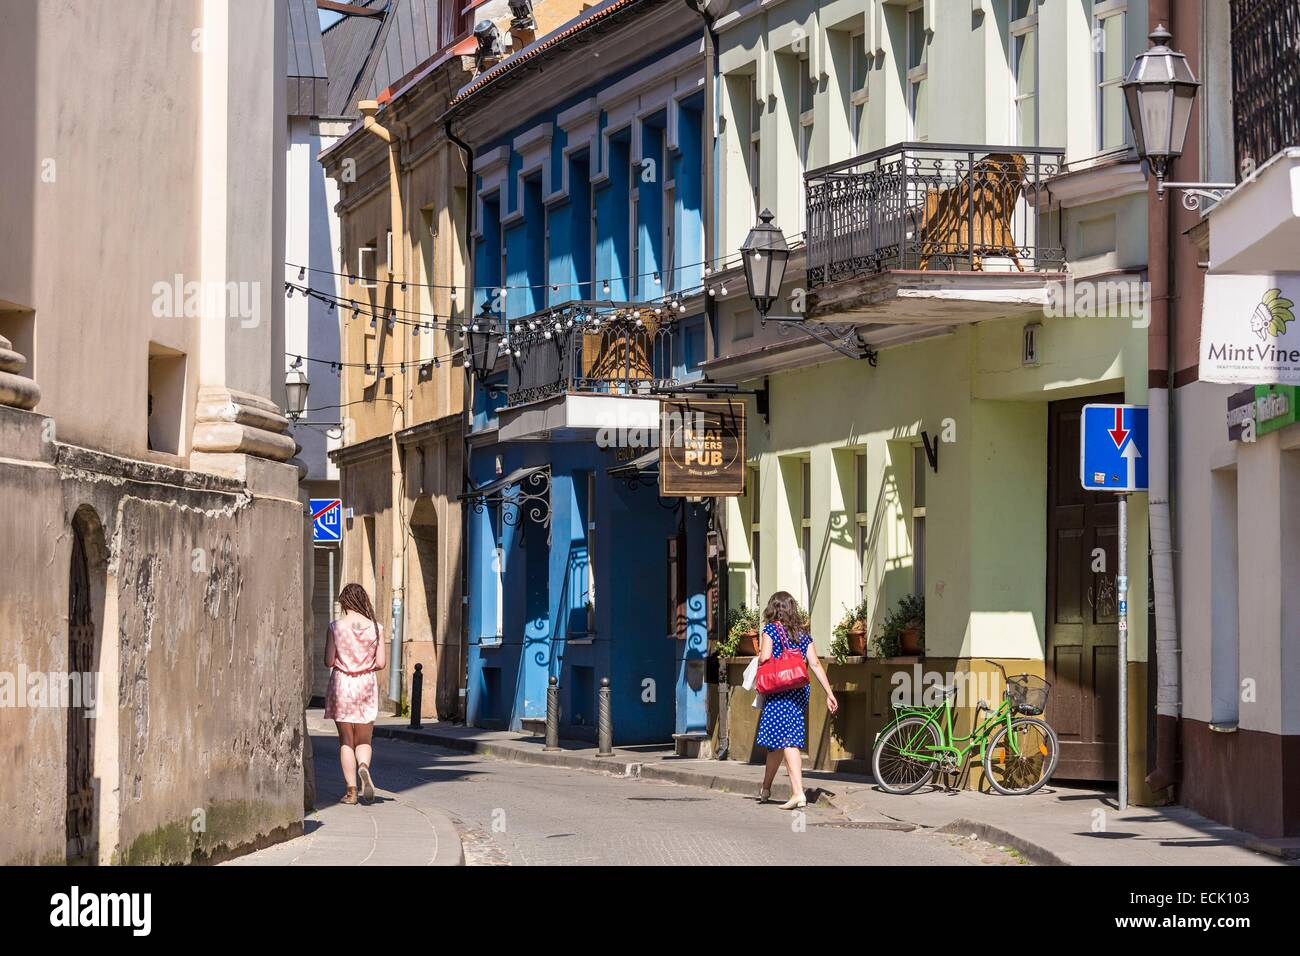 Lithuania (Baltic States), Vilnius, historical center listed as World Heritage by UNESCO, the street sv.ignoto gatvé Stock Photo